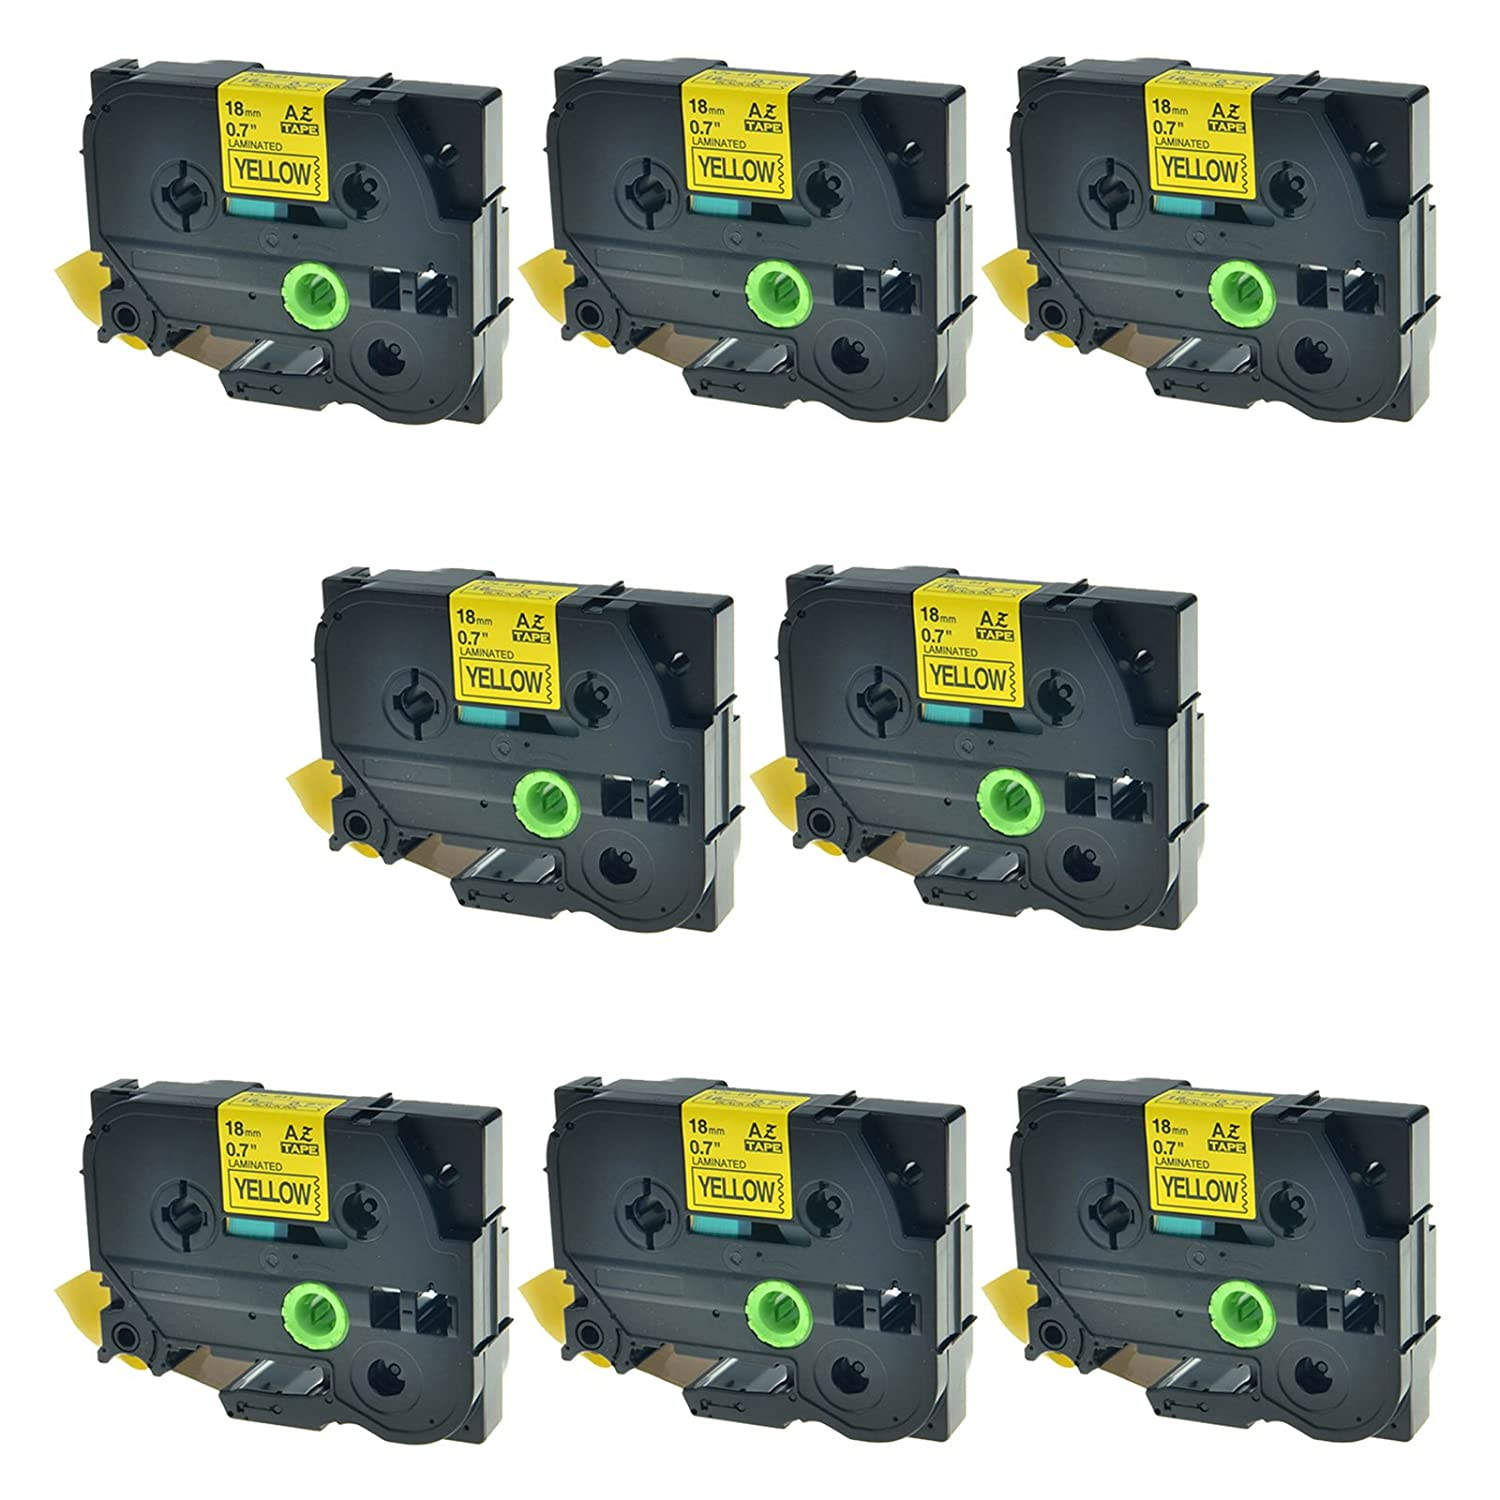 SuperInk 8 Pack TZe-641 TZ641 tze tape 18mm Compatible with Brother P-touch Label Tape Black on Yellow Standard Laminated Tape 3/4 Inch (18mm) x 26.2 ft(8m) SuperInkToner